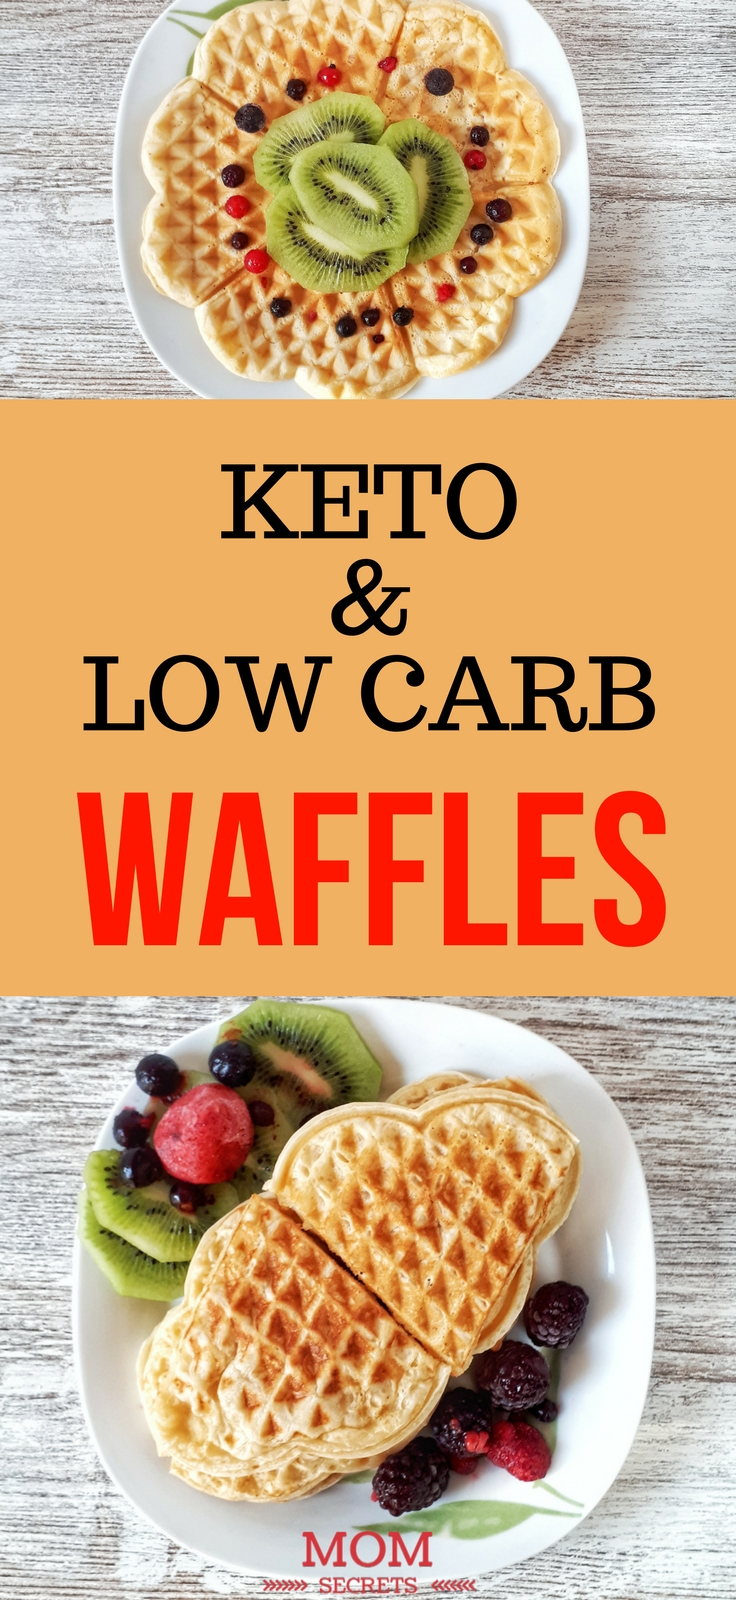 These keto and low carb waffles with almond flour and they are totally healthy. They are so fluffy and easy and quick to make. Just perfect!